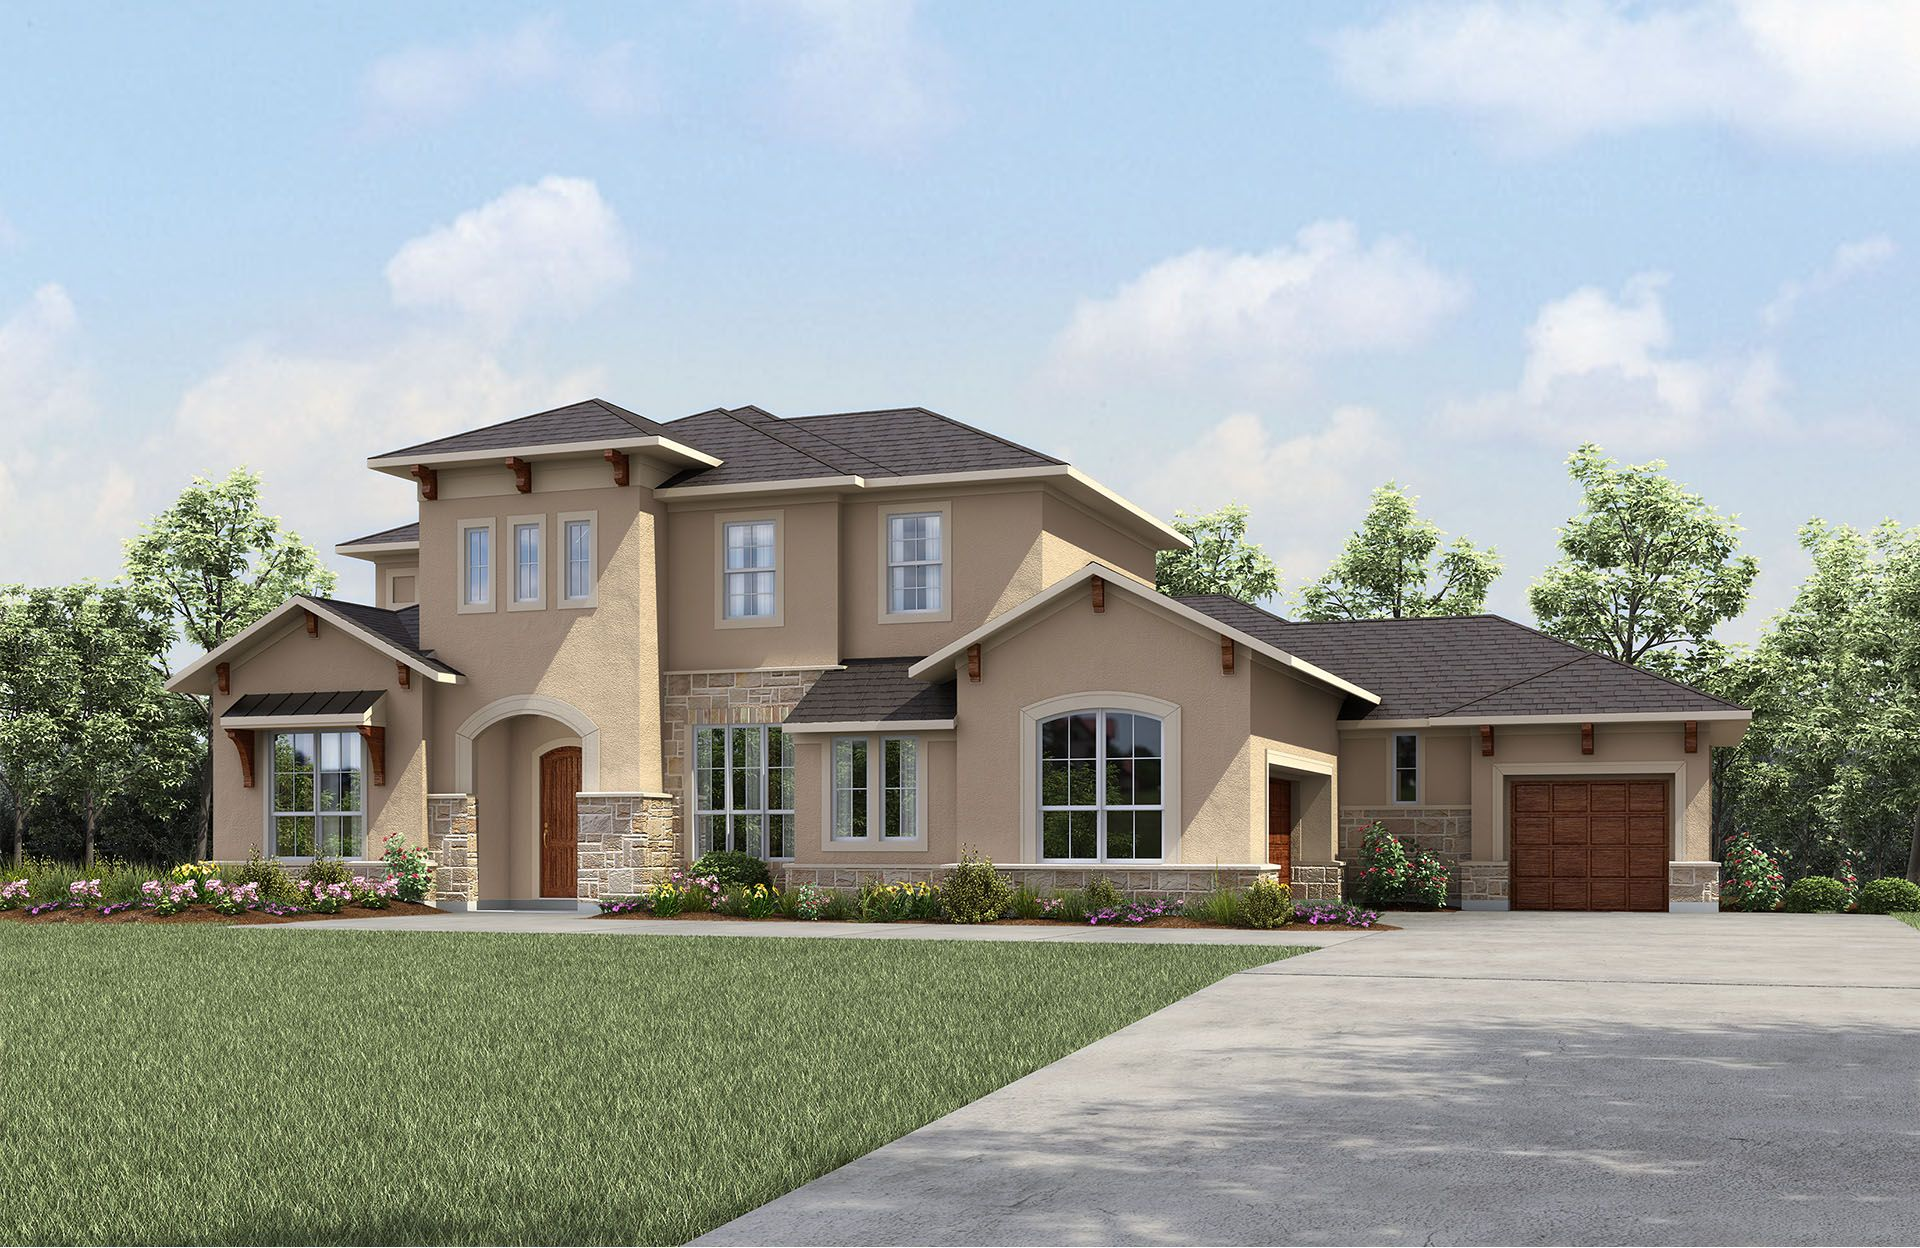 Single Family for Active at Colinas Ii 410 Umbrella Sky Liberty Hill, Texas 78642 United States